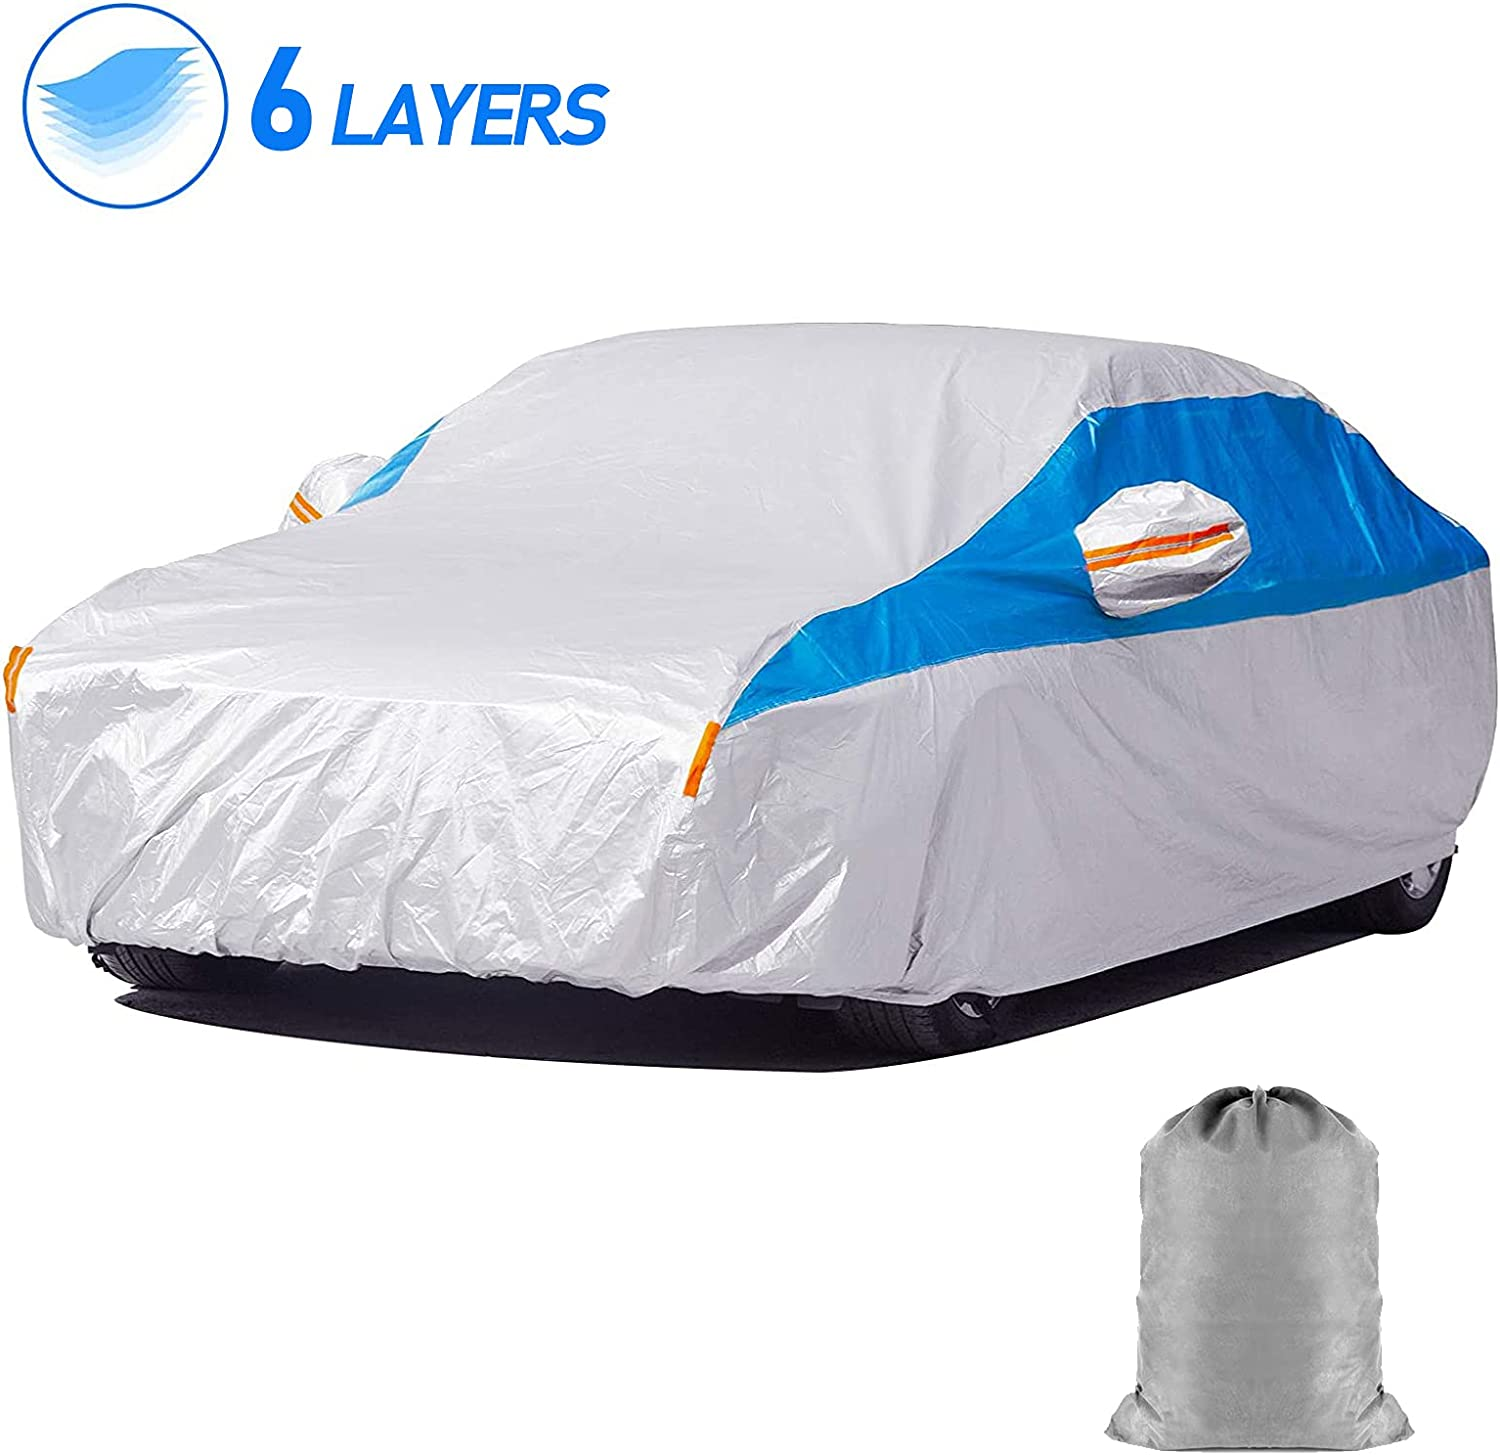 HIRALIY Cheap mail order OFFicial shopping 6 Layers Waterproof Car Cover Fit to 193 178 inch All W